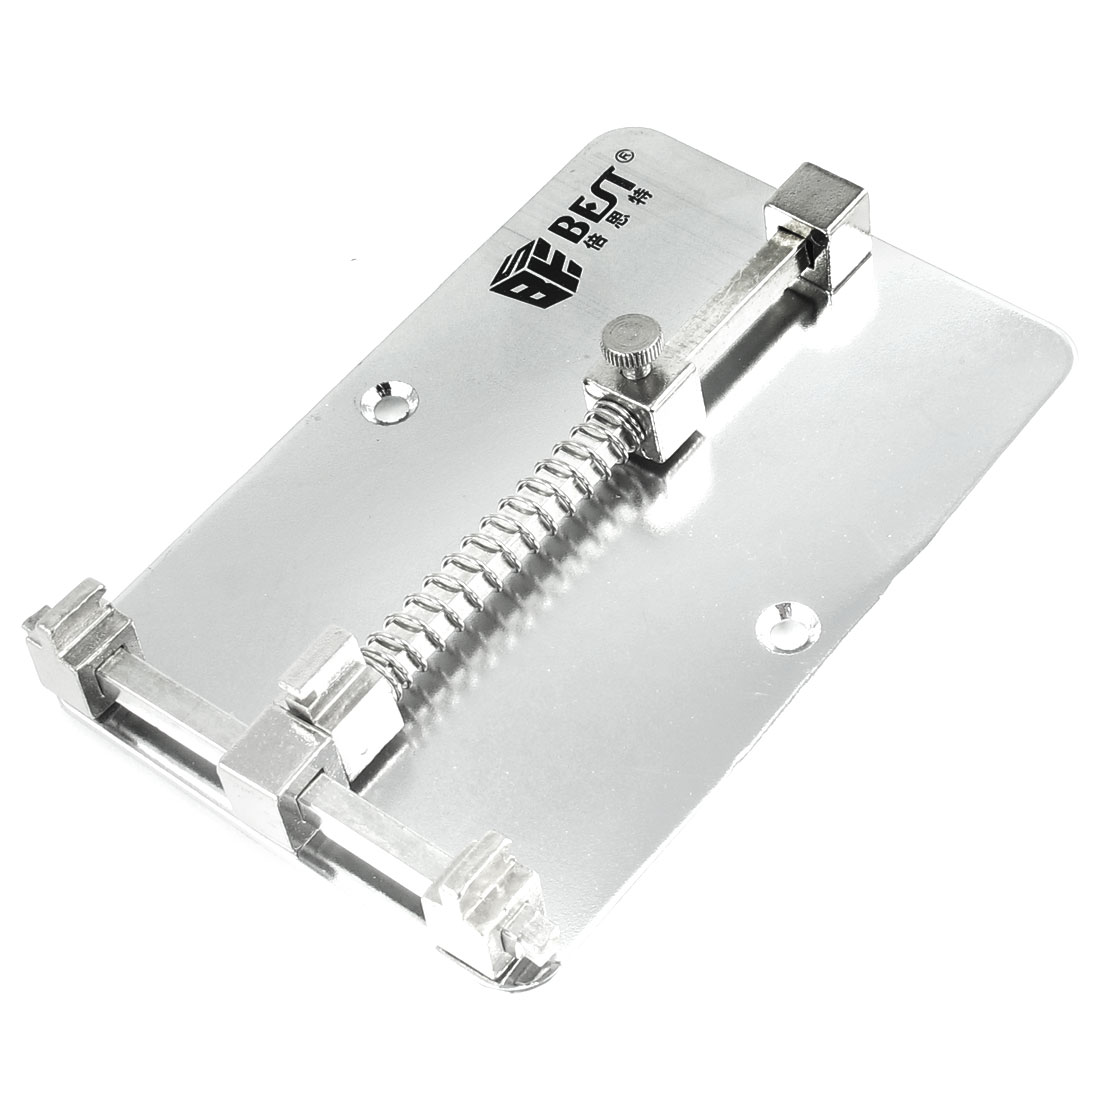 Rectangle Silver Tone Metal PCB Circuit Board Repair Holder for Cell Phone